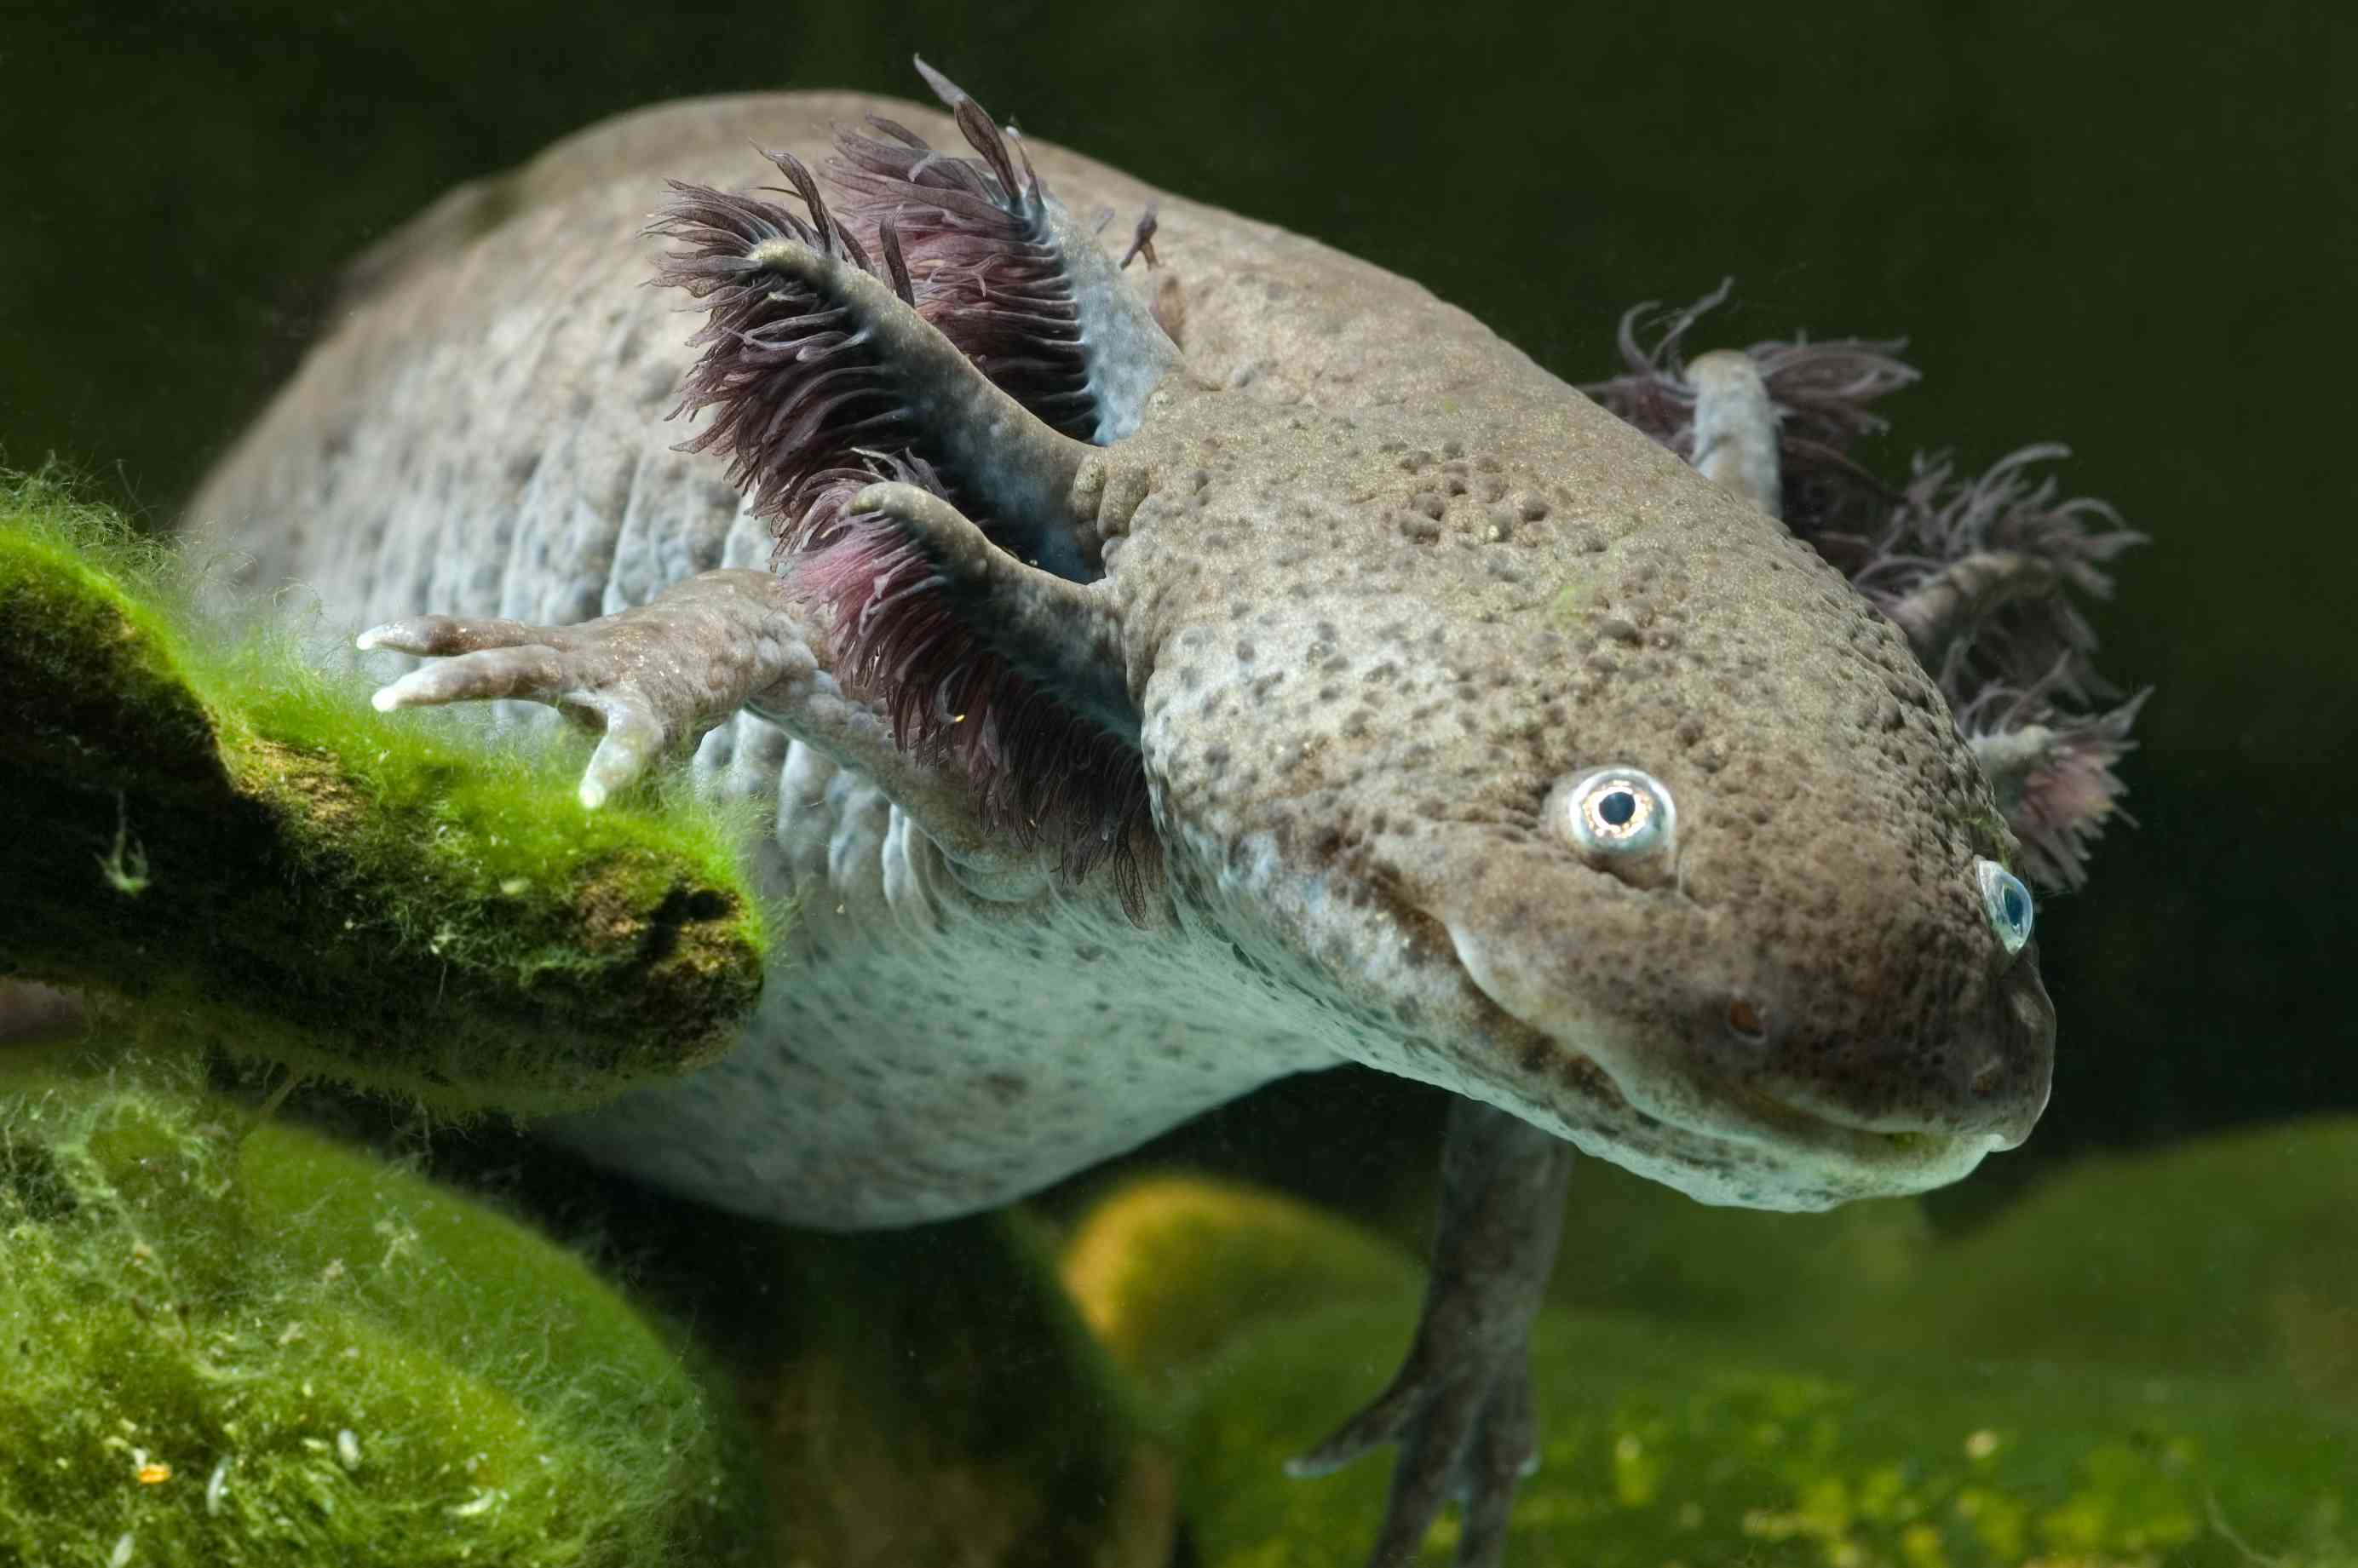 A close up of a dark axolotl floating underwater.